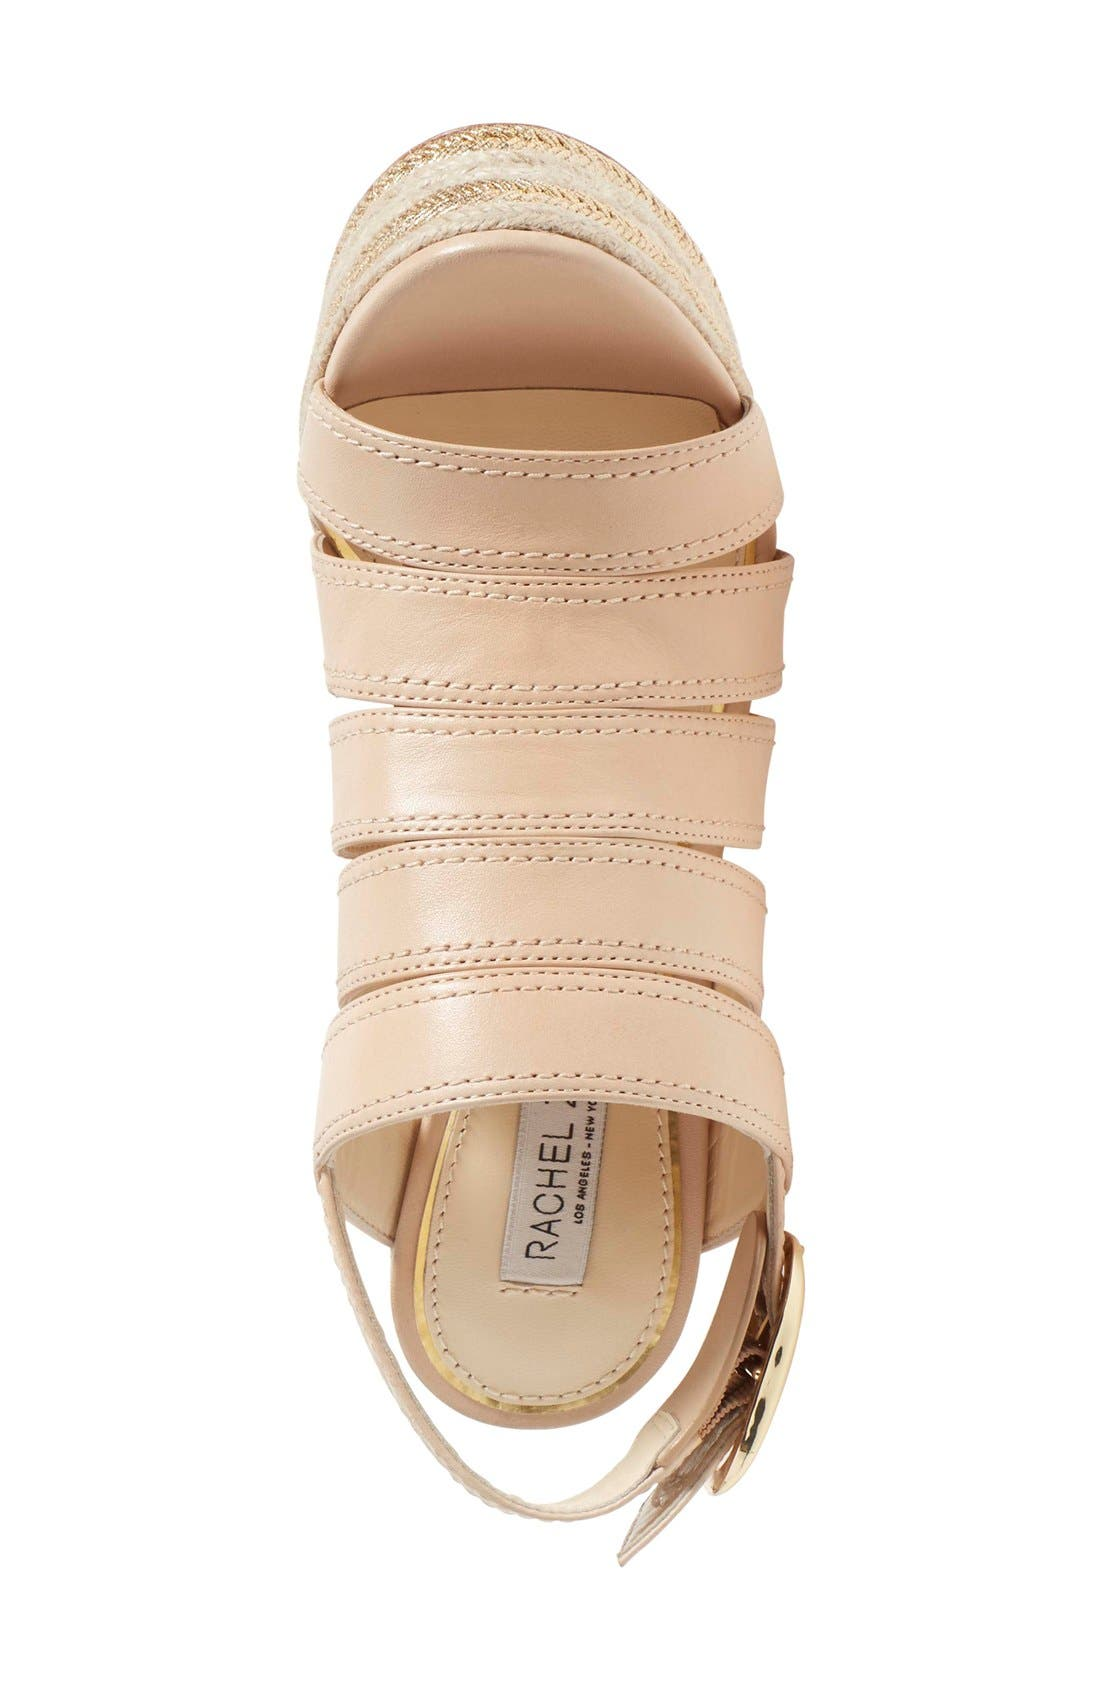 Alternate Image 3  - Rachel Zoe 'Gia' Sandal (Women)